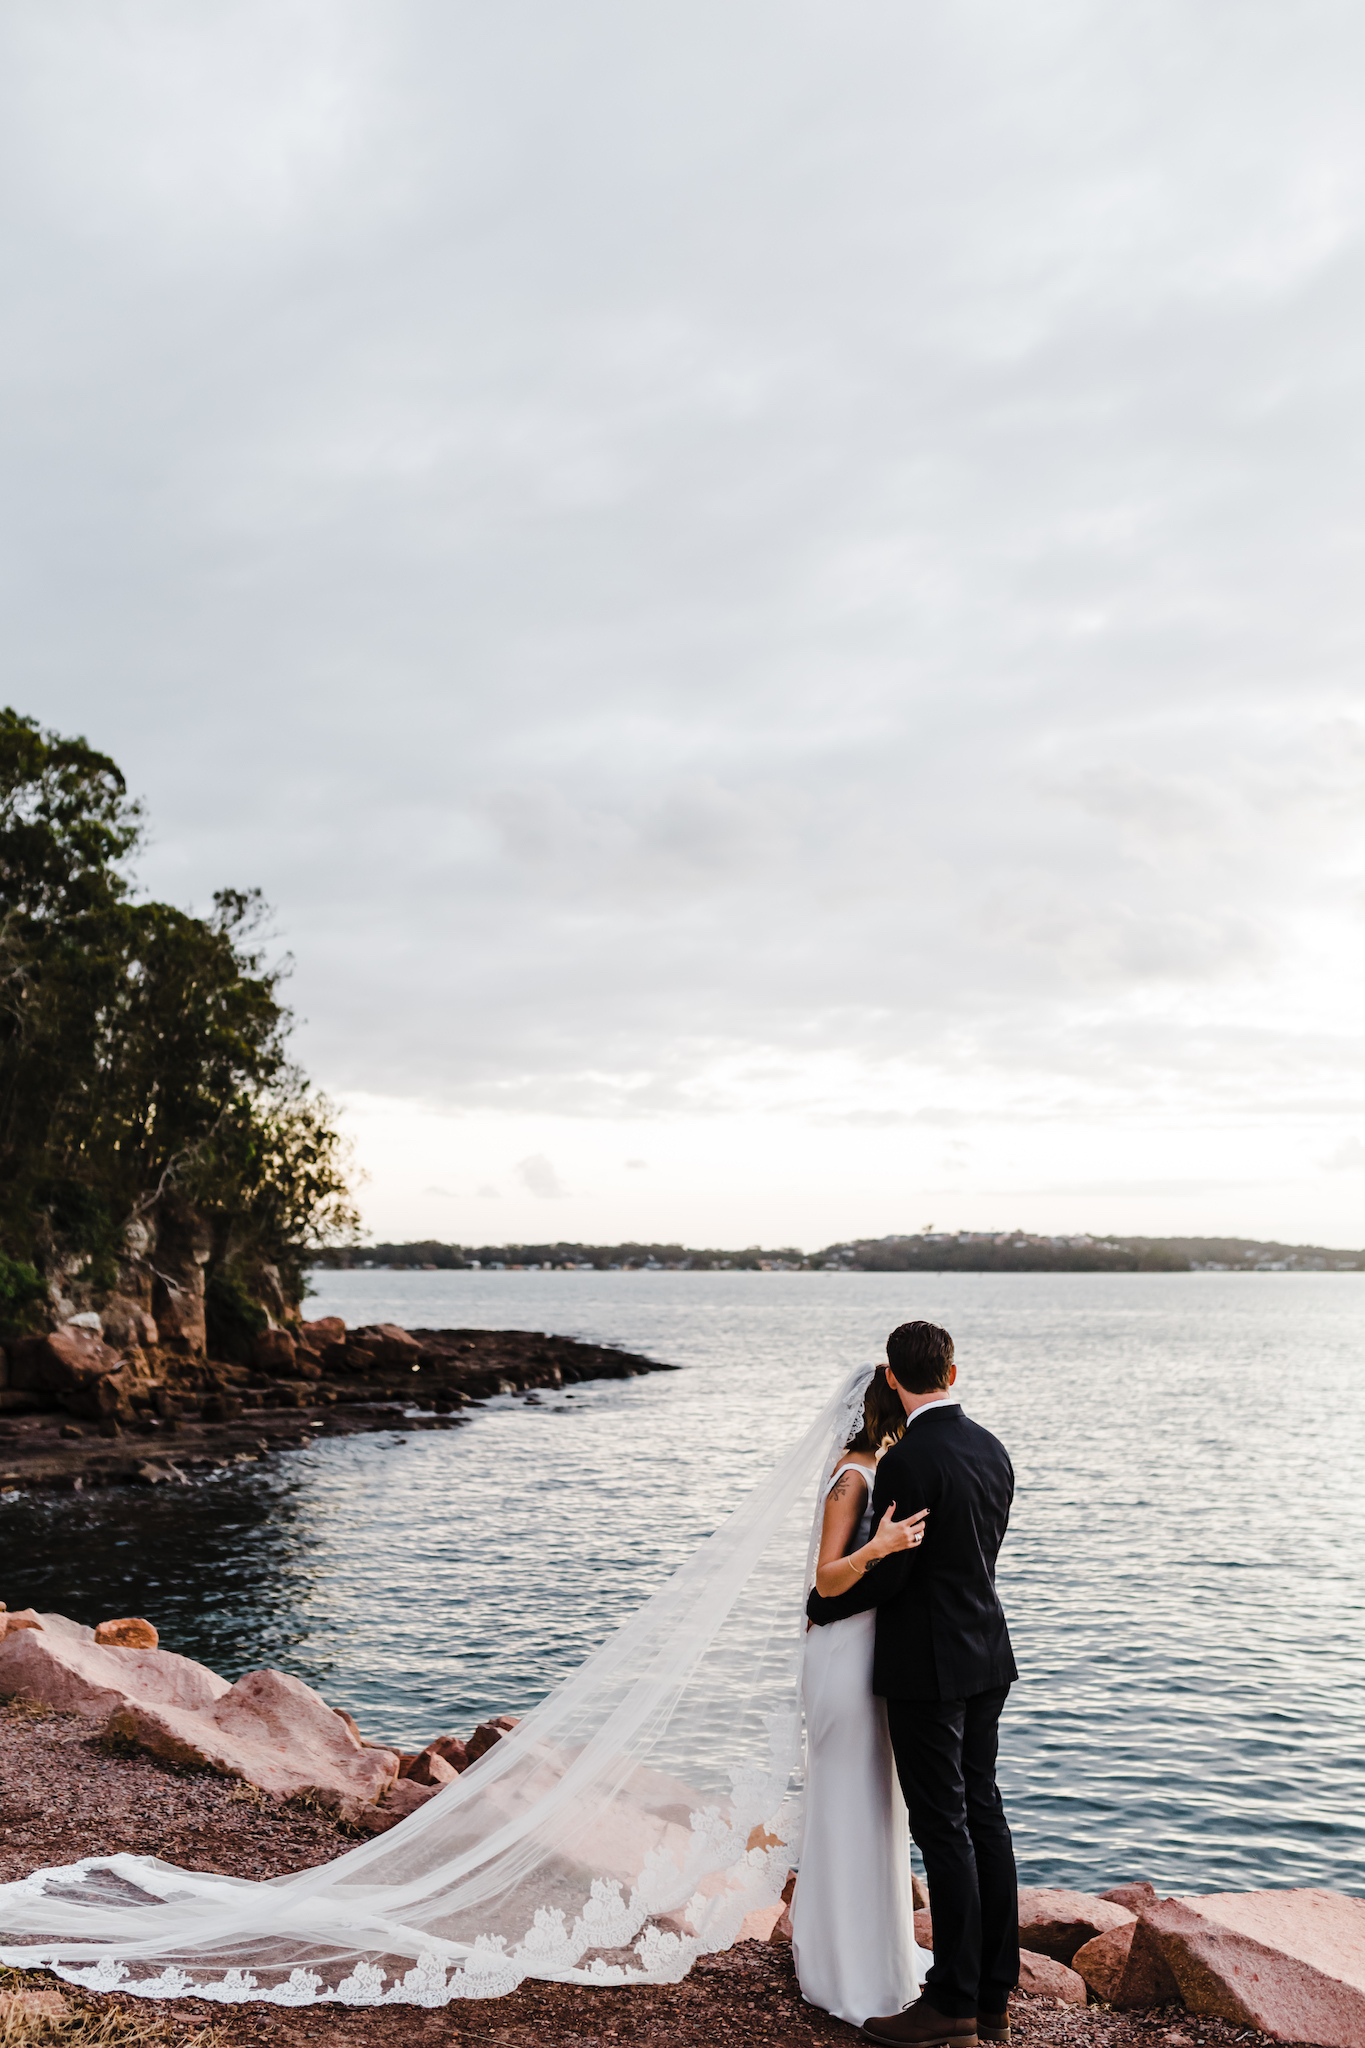 109.anchorageportstephens-melissa+harry.jpg